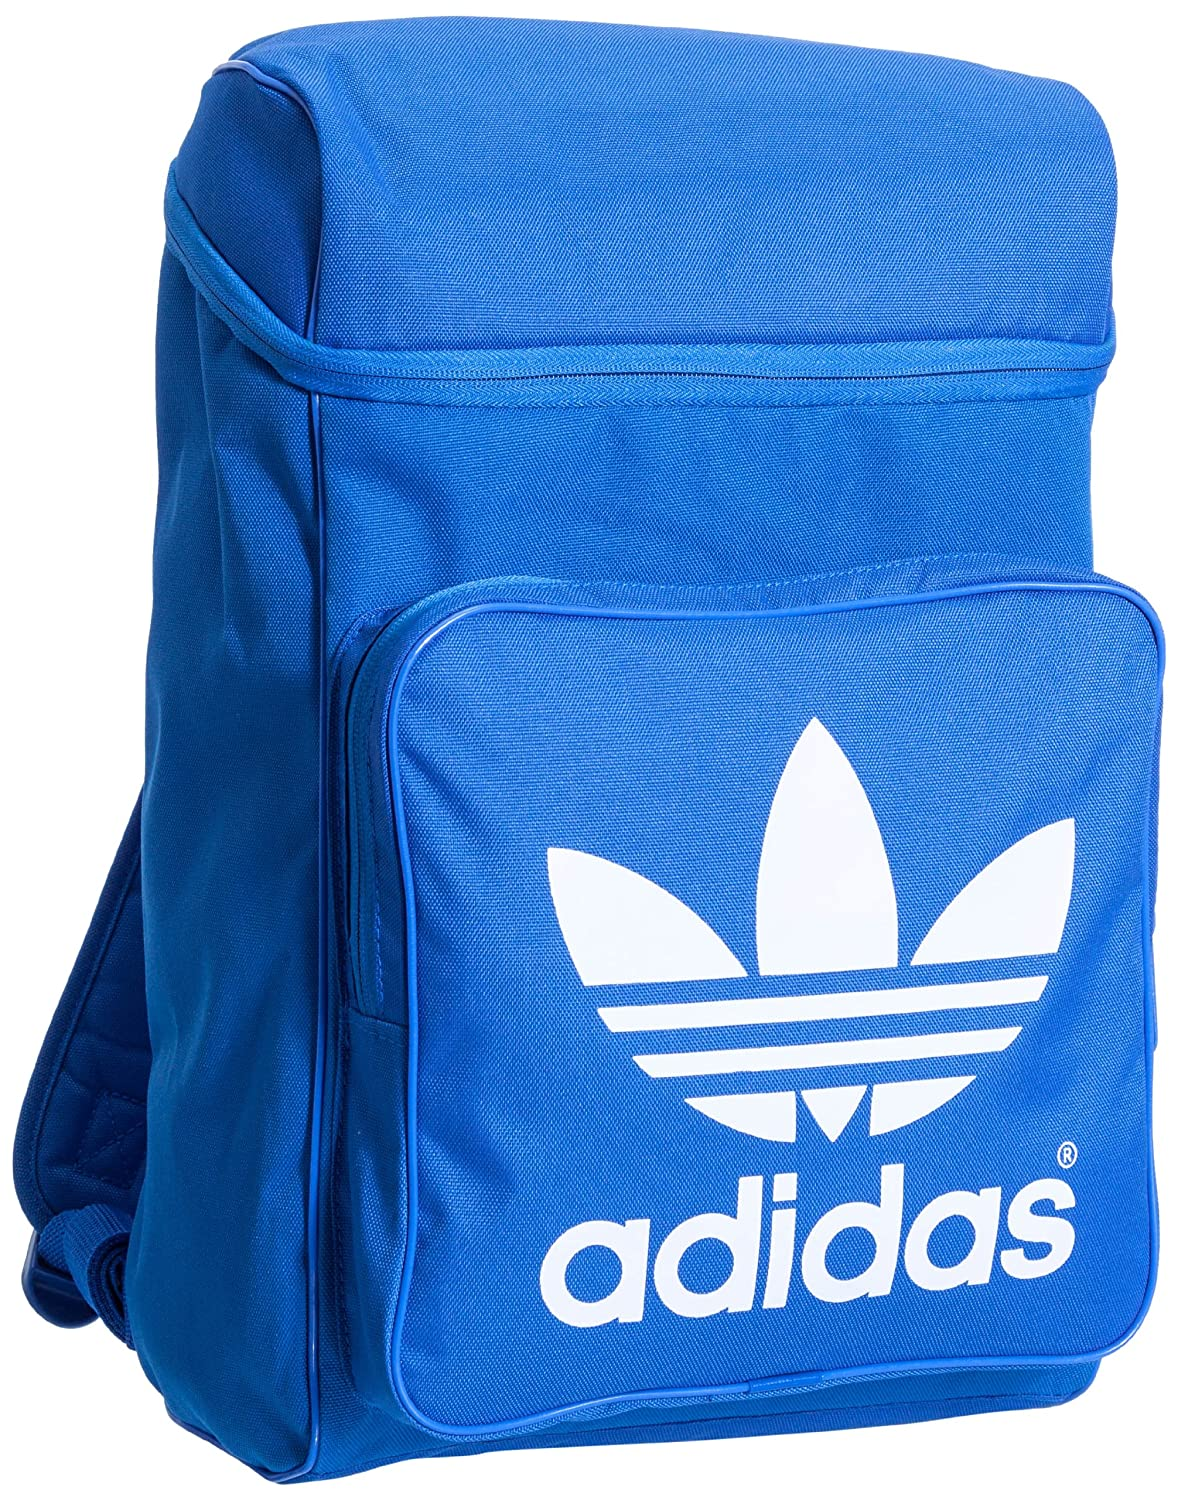 Bluebird NS adidas Originals Mens Classic Two Strap Backpack